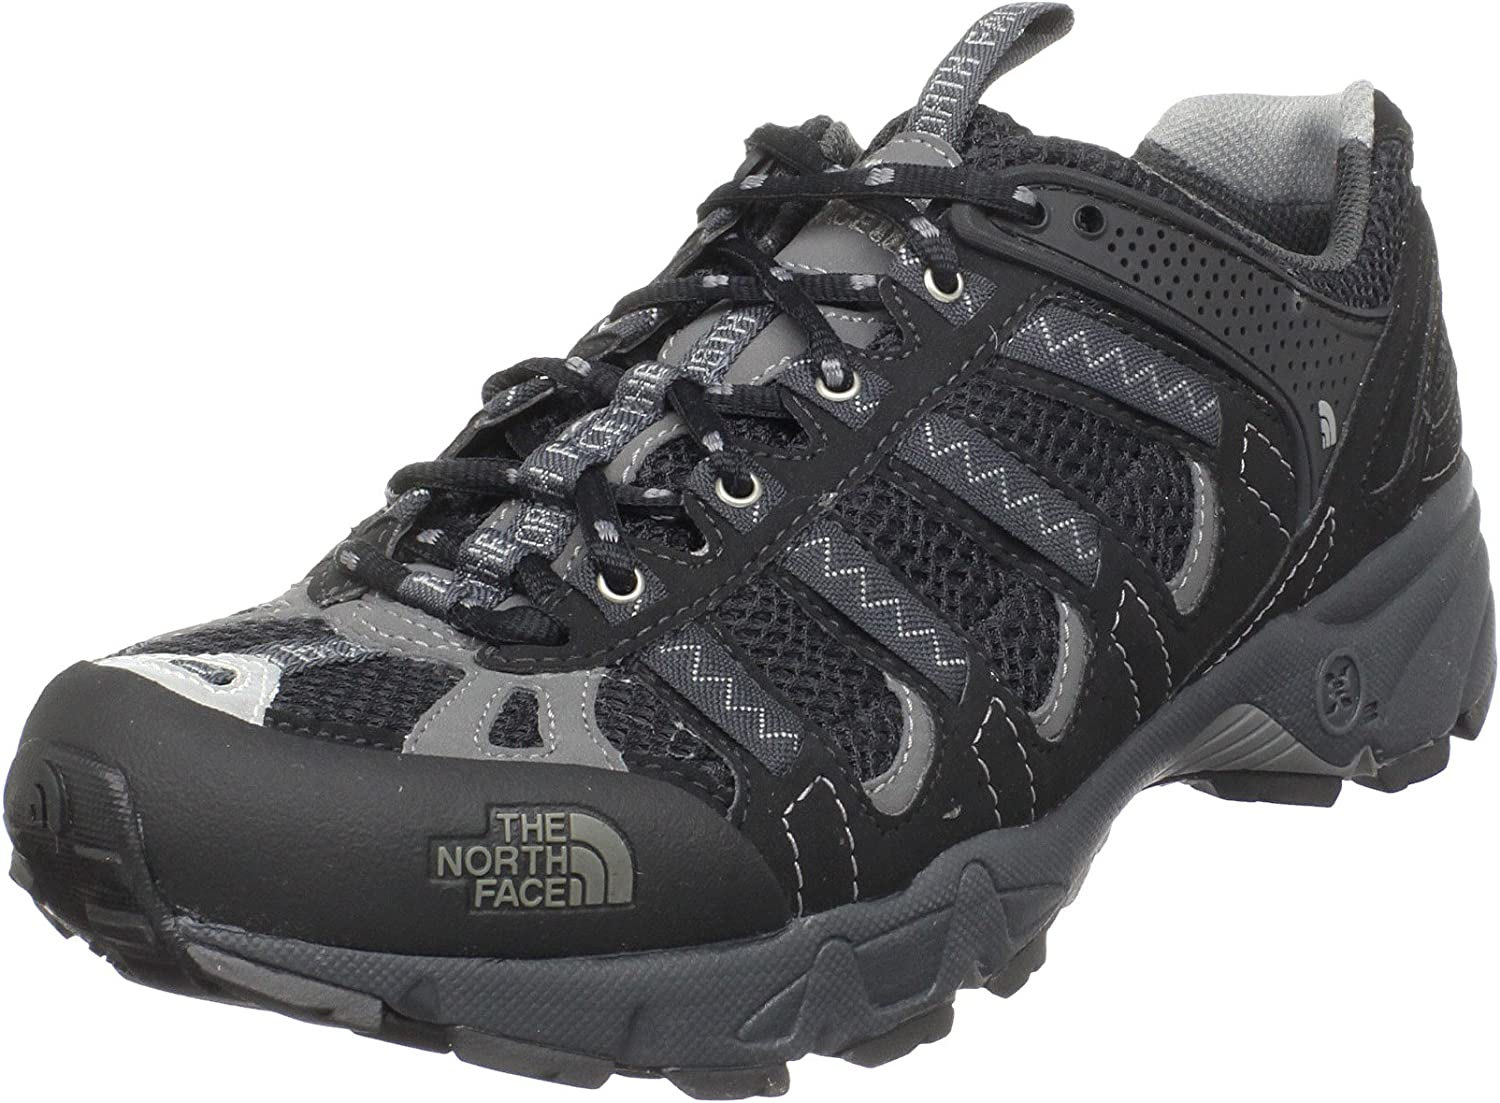 THE NORTH FACE Ultra 105 shoes